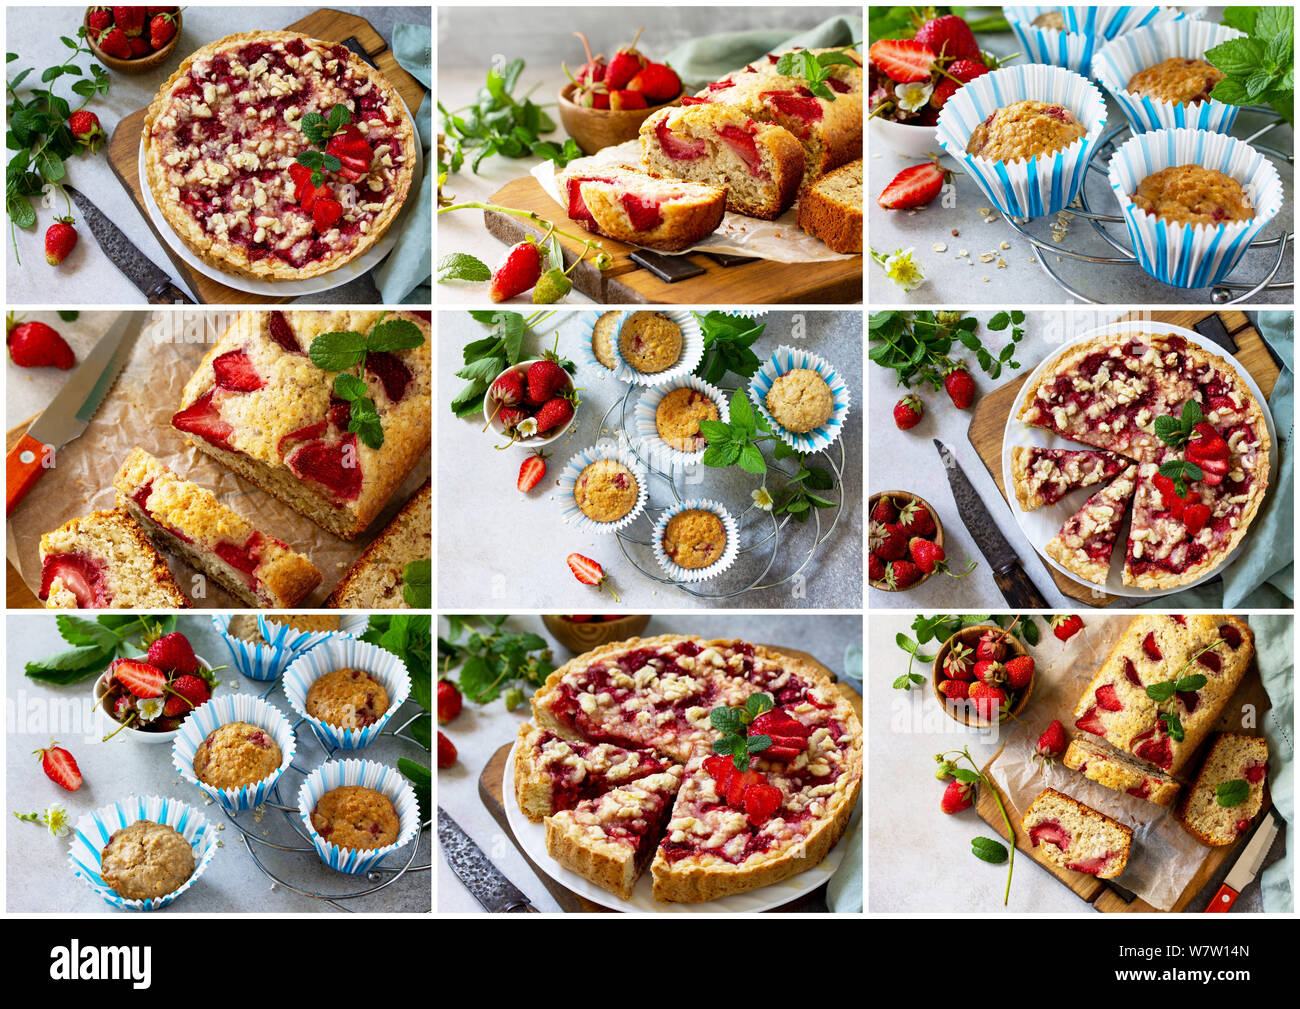 Collage summer baking. Strawberry pastries - cupcake, pie and muffins on a stone table. Stock Photo